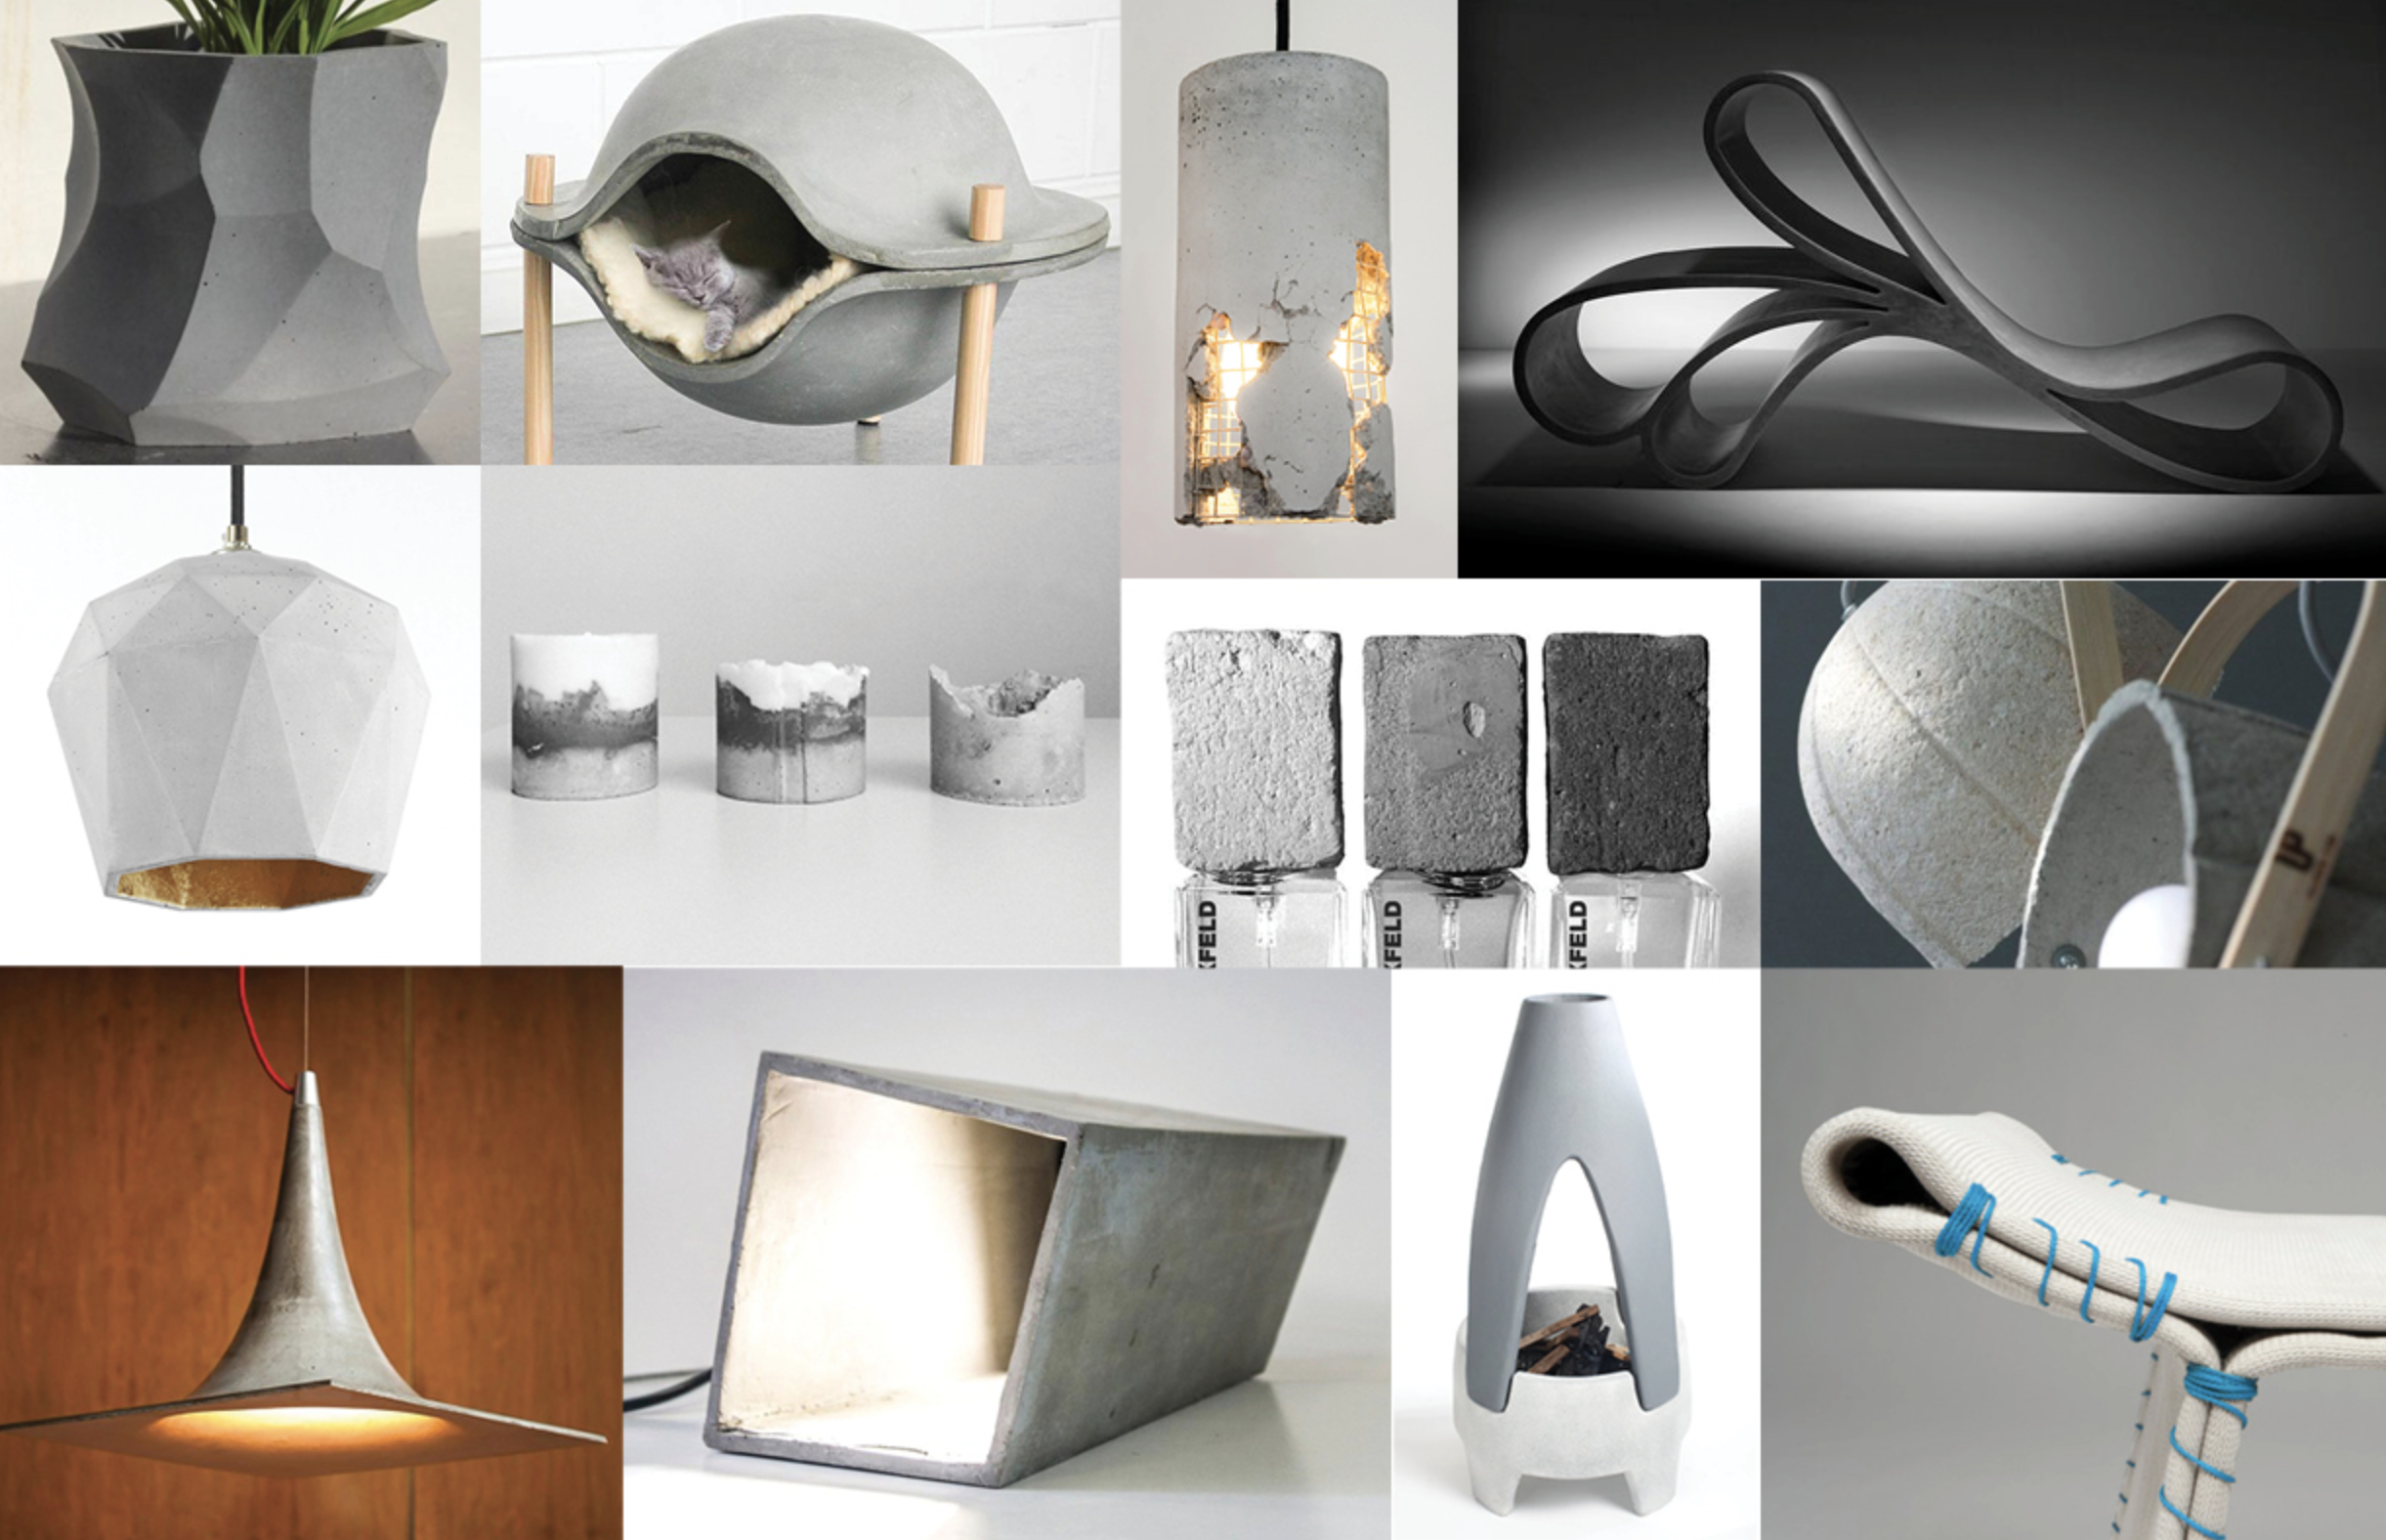 Concrete mood board created to evaluate the physical limitations of concrete and different applications